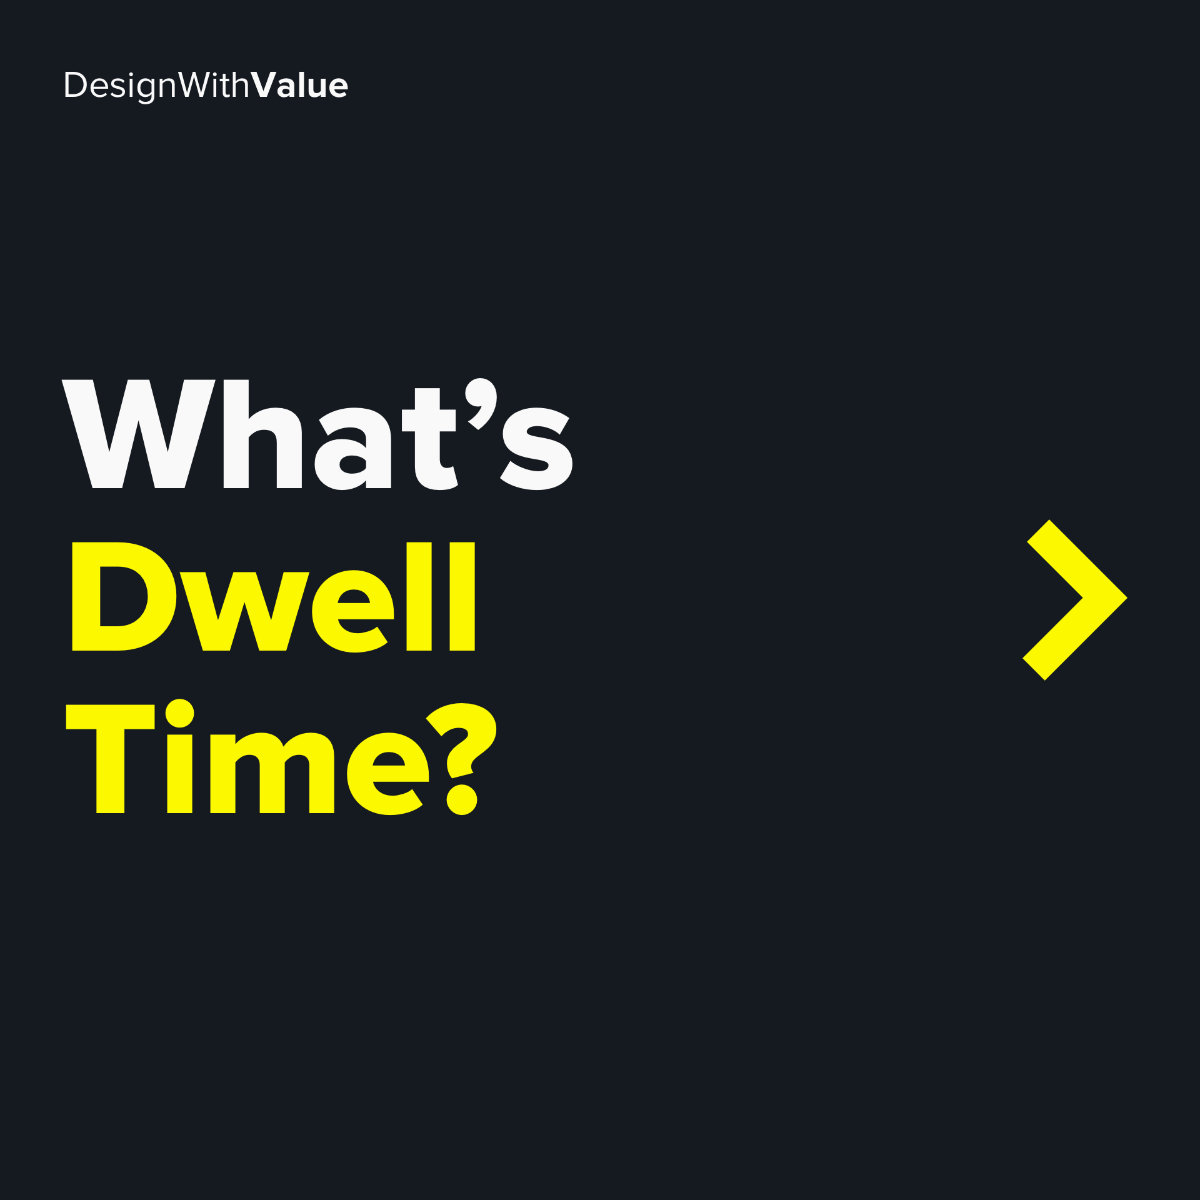 What's dwell time?